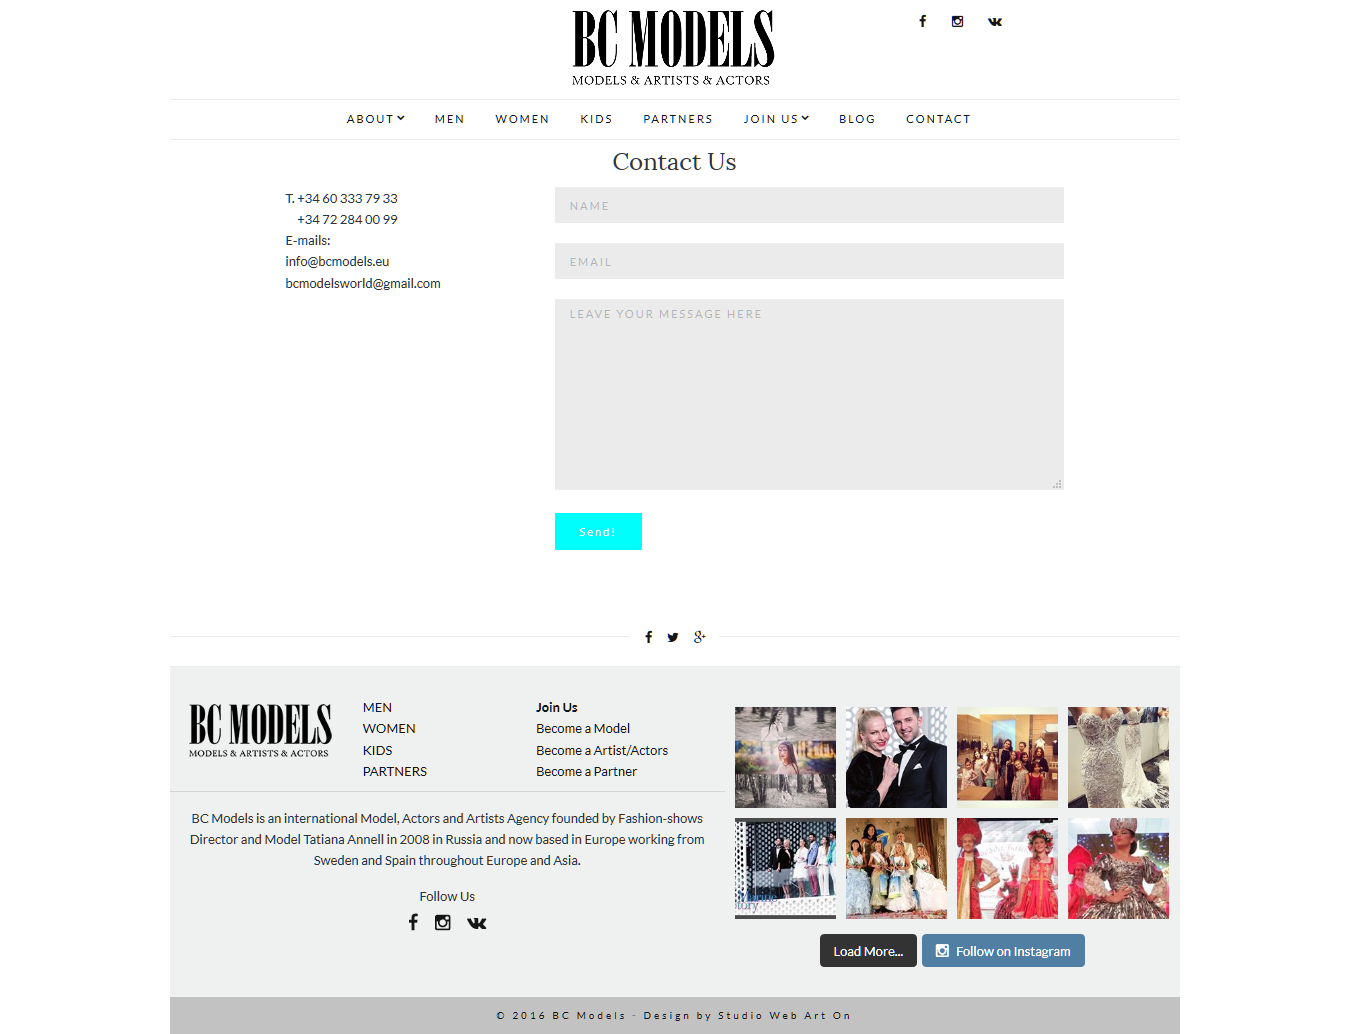 bcmodels-contact